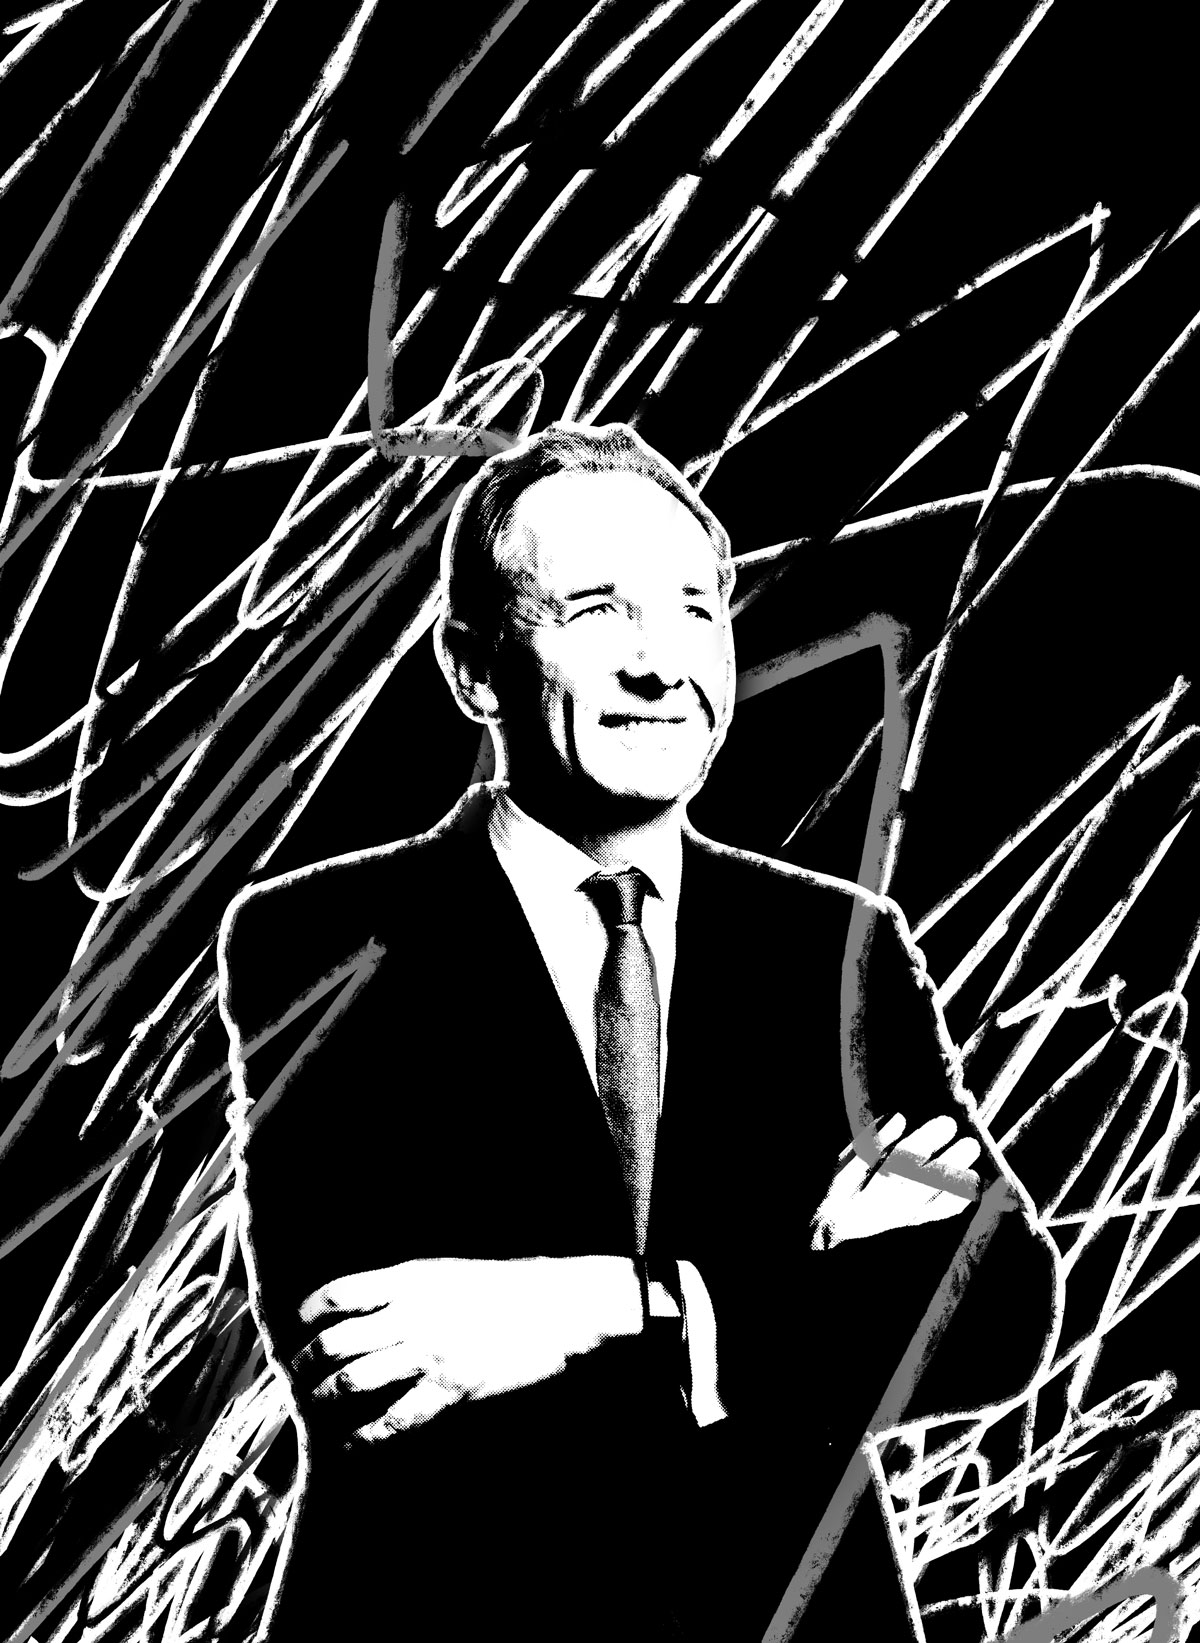 With Goldman Sachs in the Rear-View Mirror, Morgan Stanley Chases Down Schwab